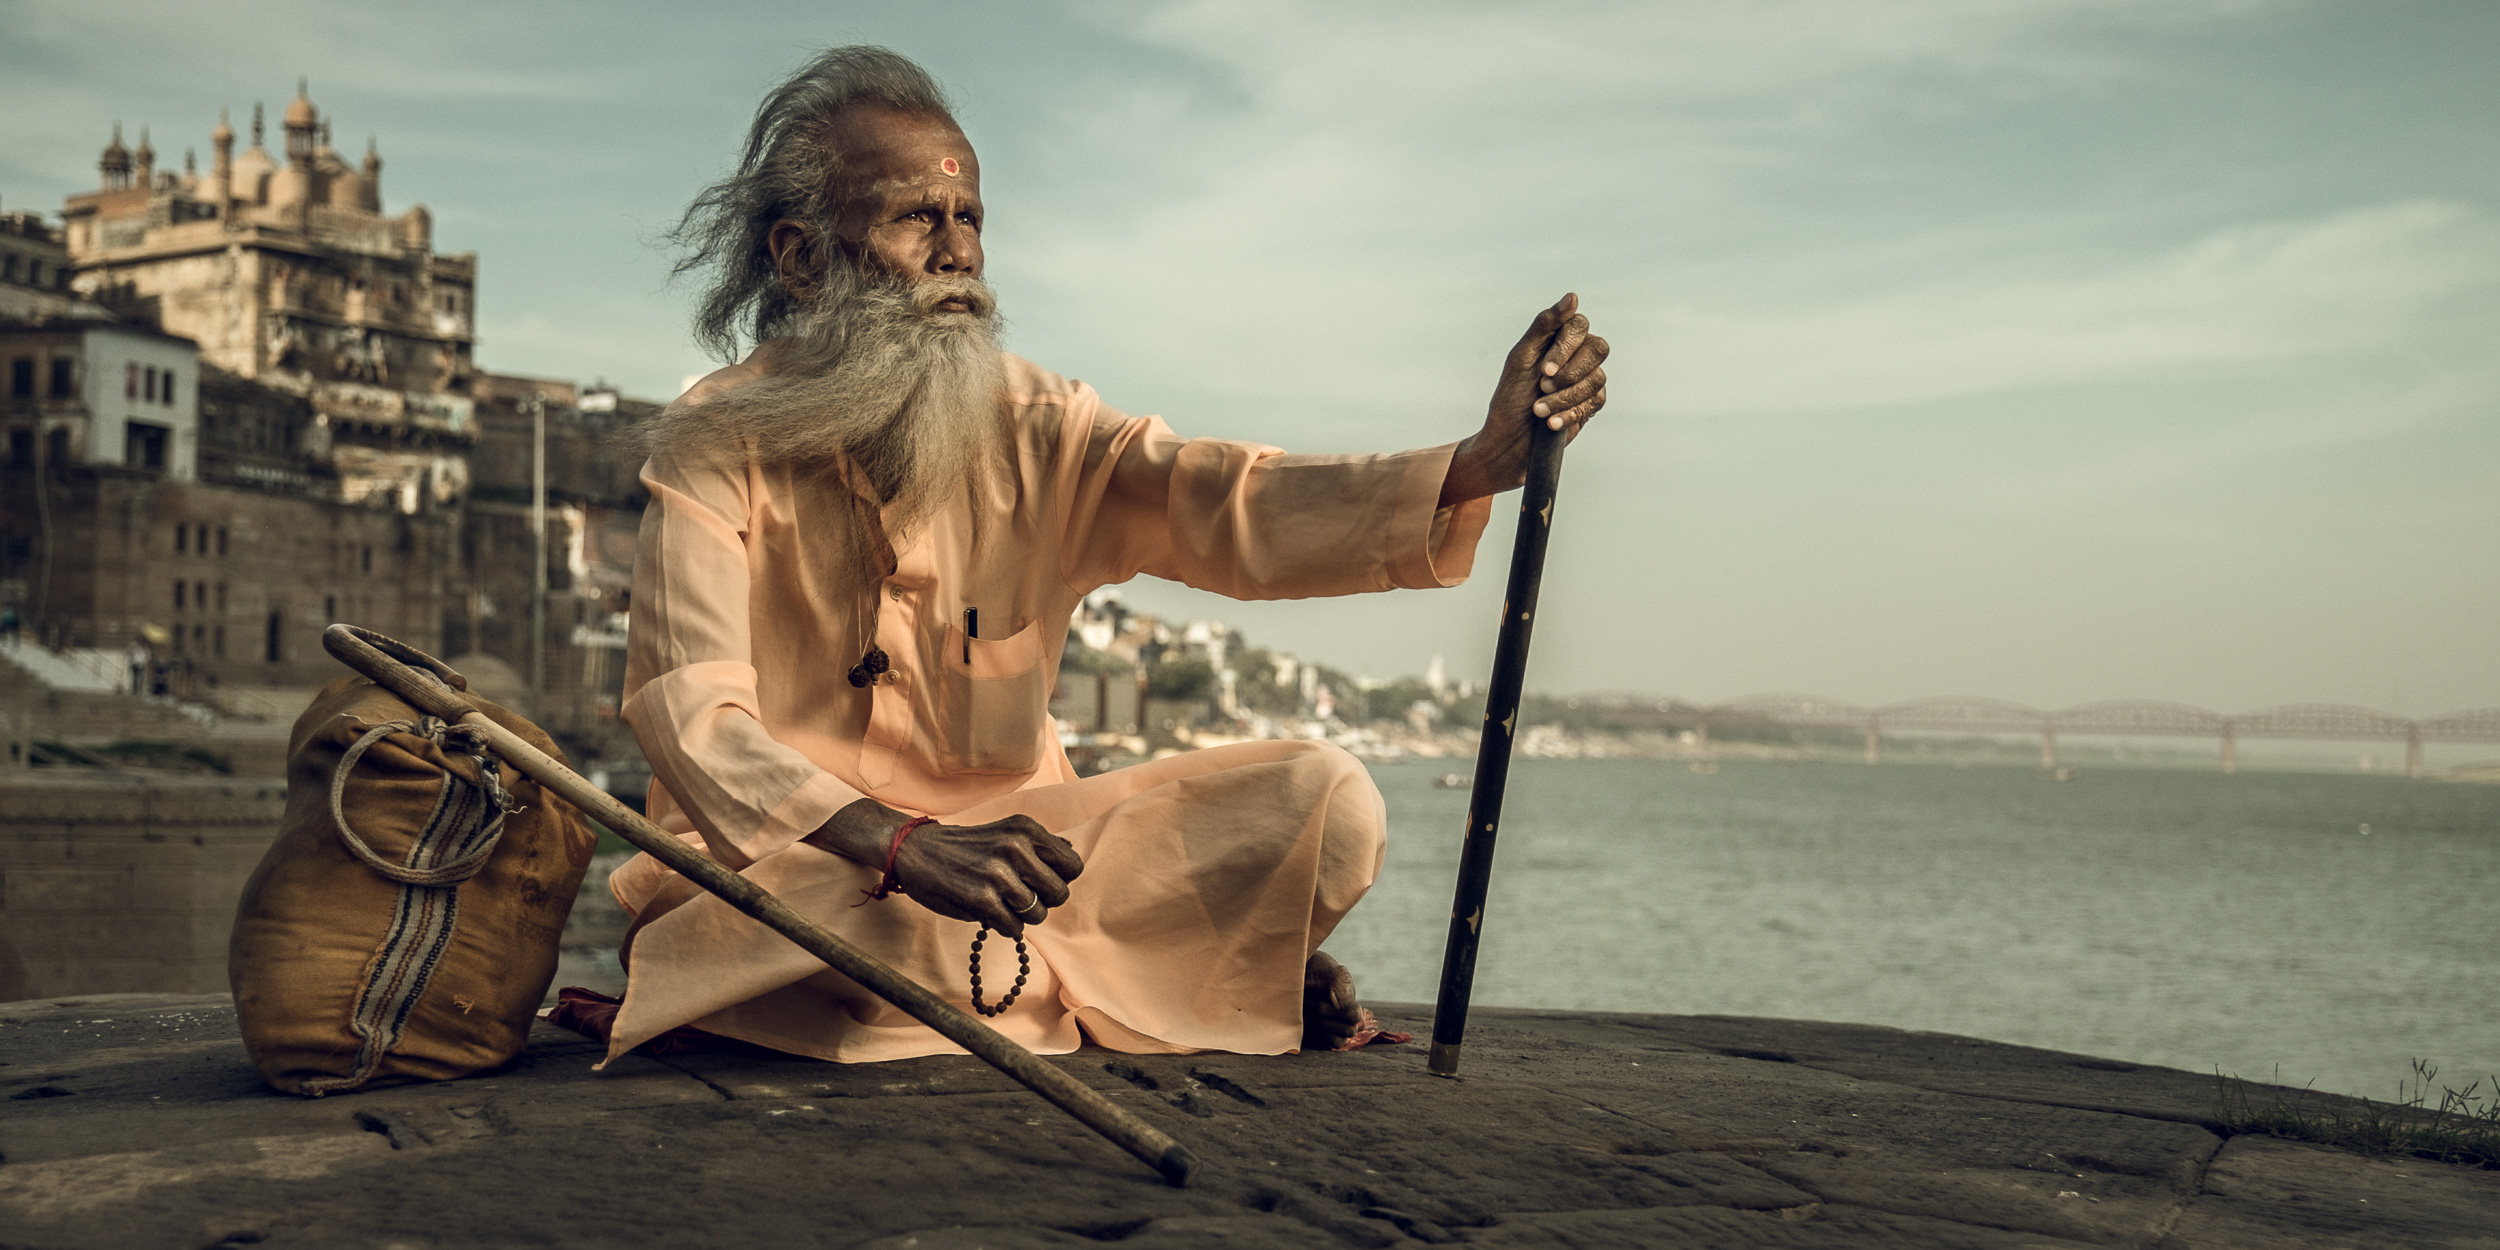 Sadhu overlooking the Ganges